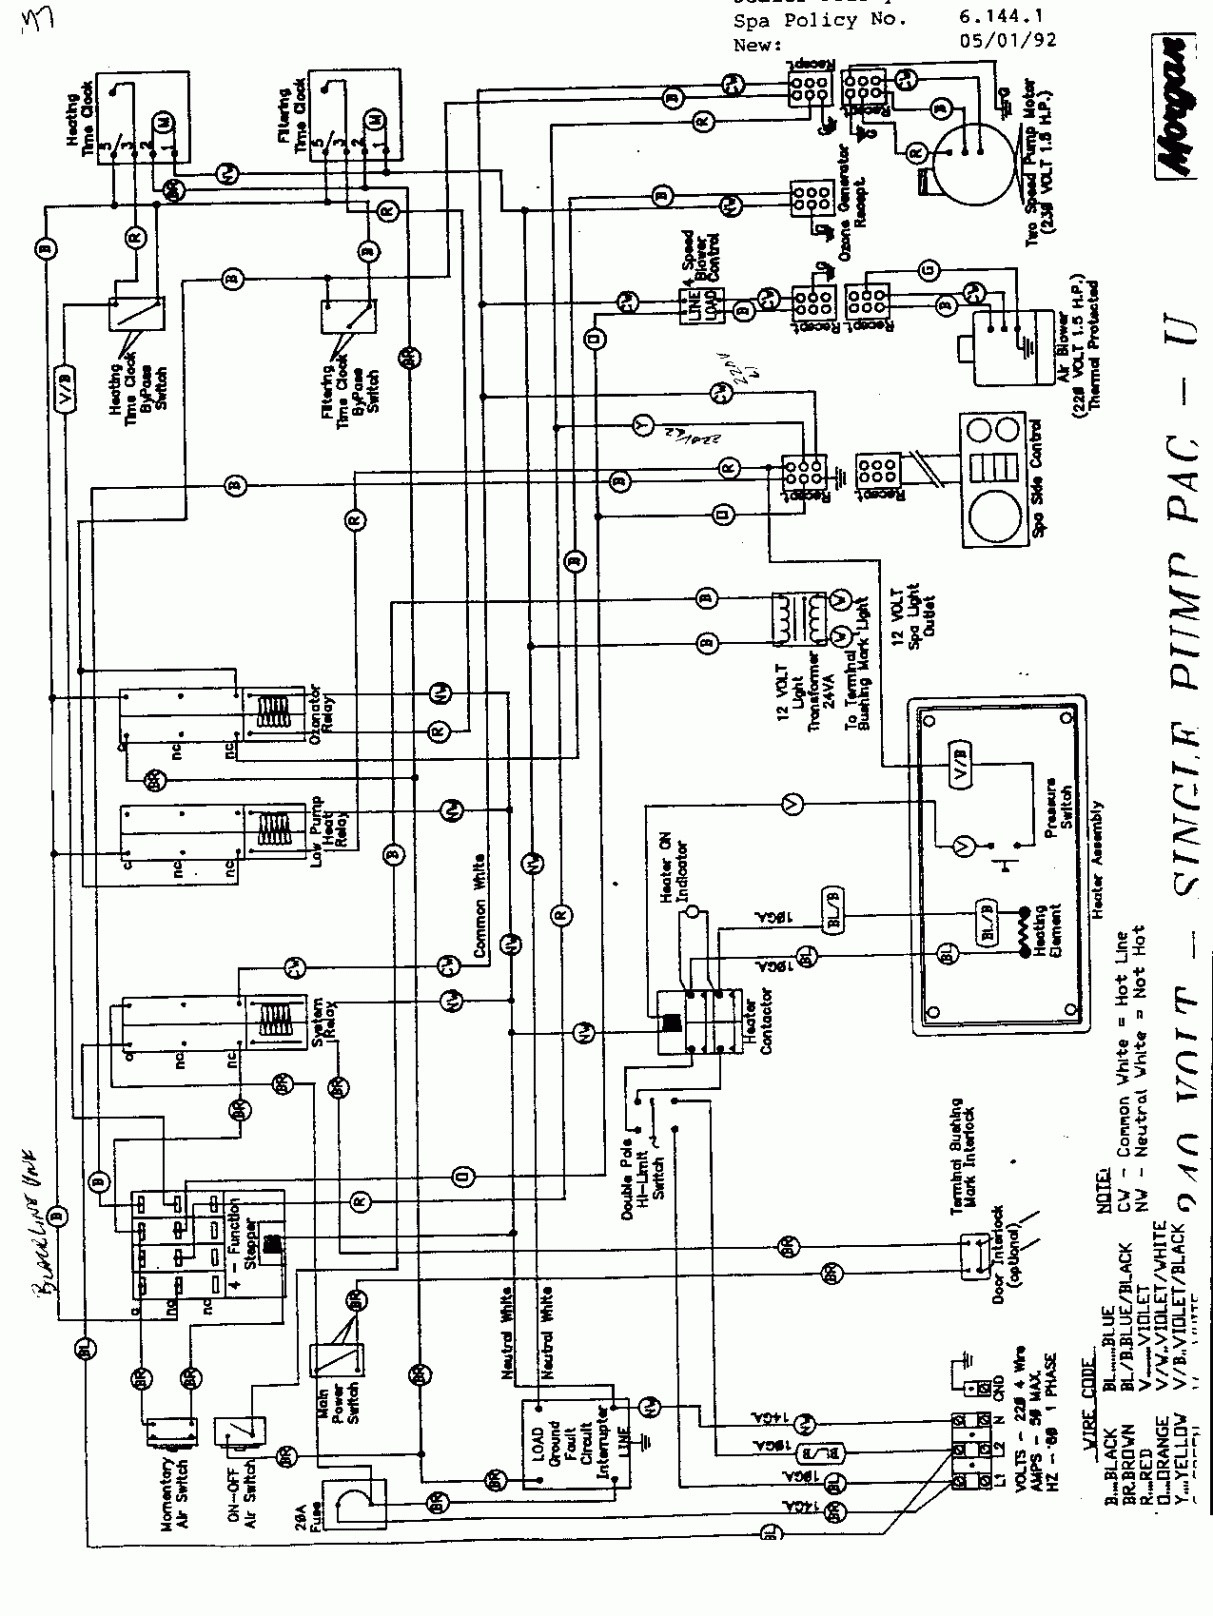 Balboa Instruments Wiring Diagram from wholefoodsonabudget.com